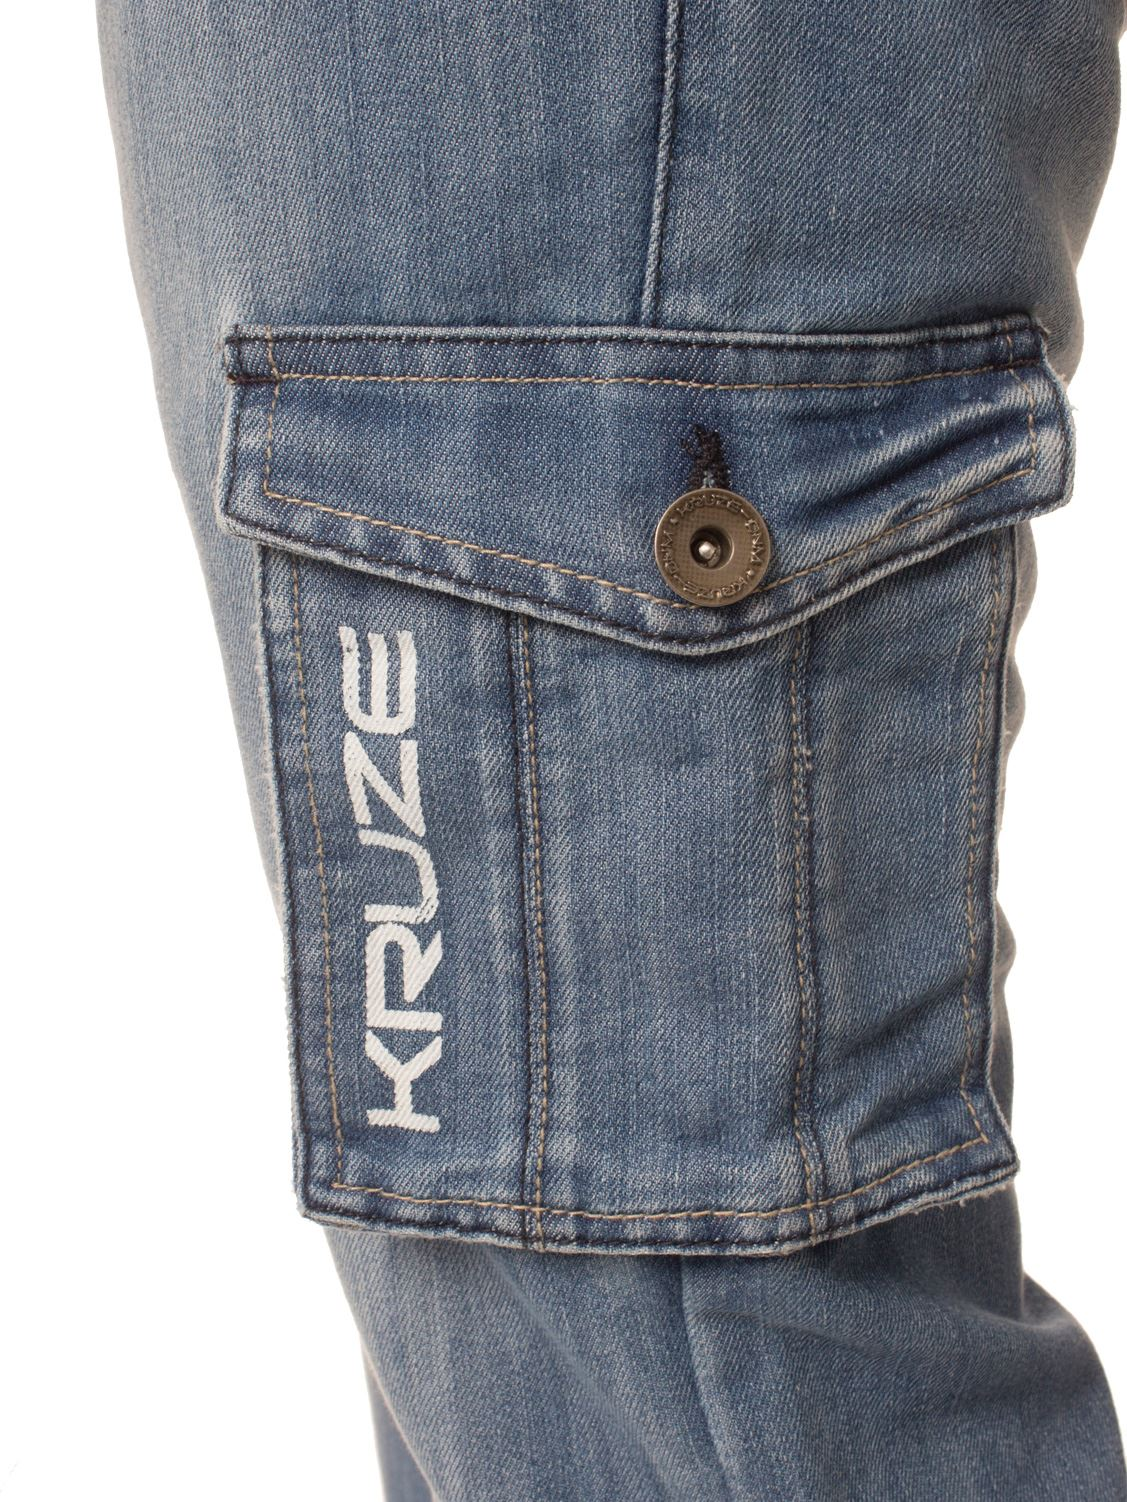 KRUZE-Mens-Combat-Jeans-Casual-Cargo-Work-Pants-Denim-Trousers-All-Waist-Sizes thumbnail 8